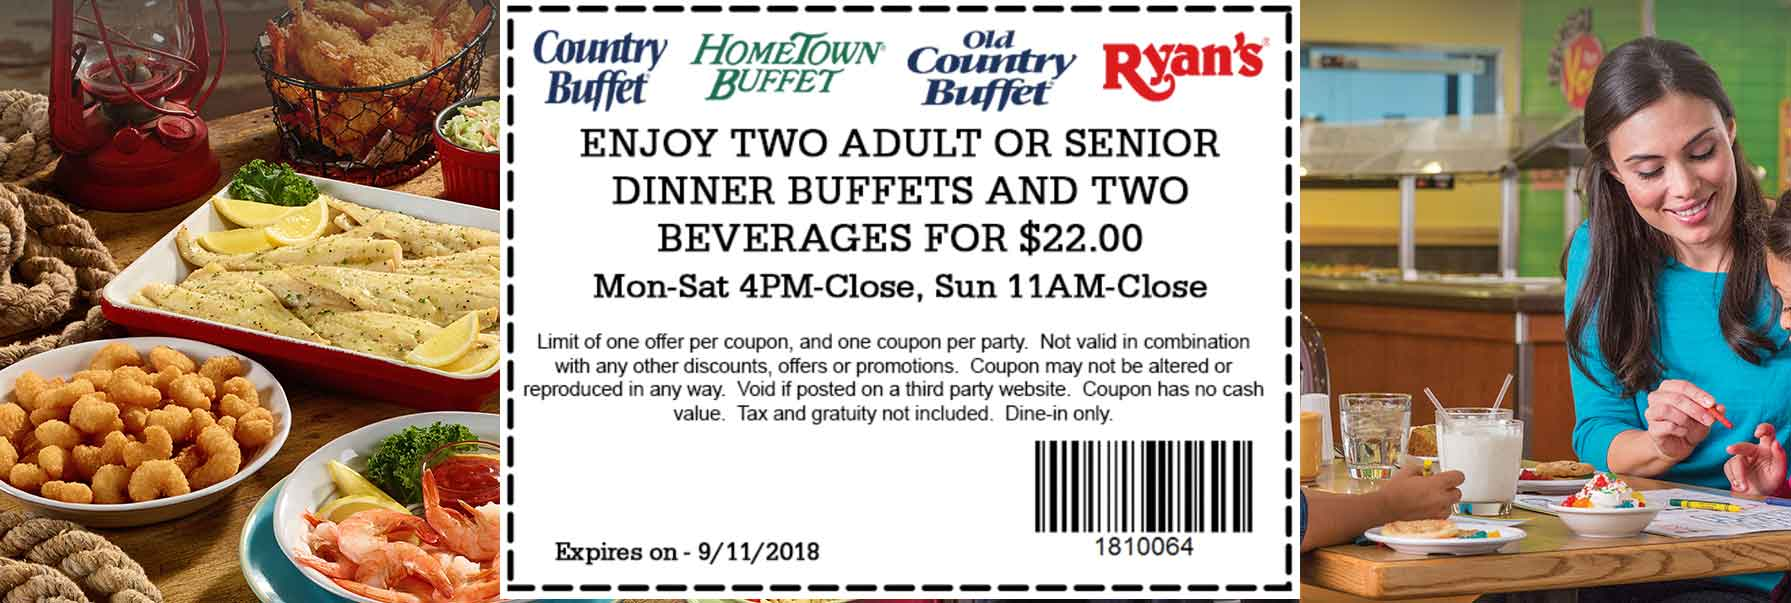 Hometown Buffet Coupon June 2019 2 dinners + drinks = $22 at Ryans, HomeTown Buffet & Old Country Buffet